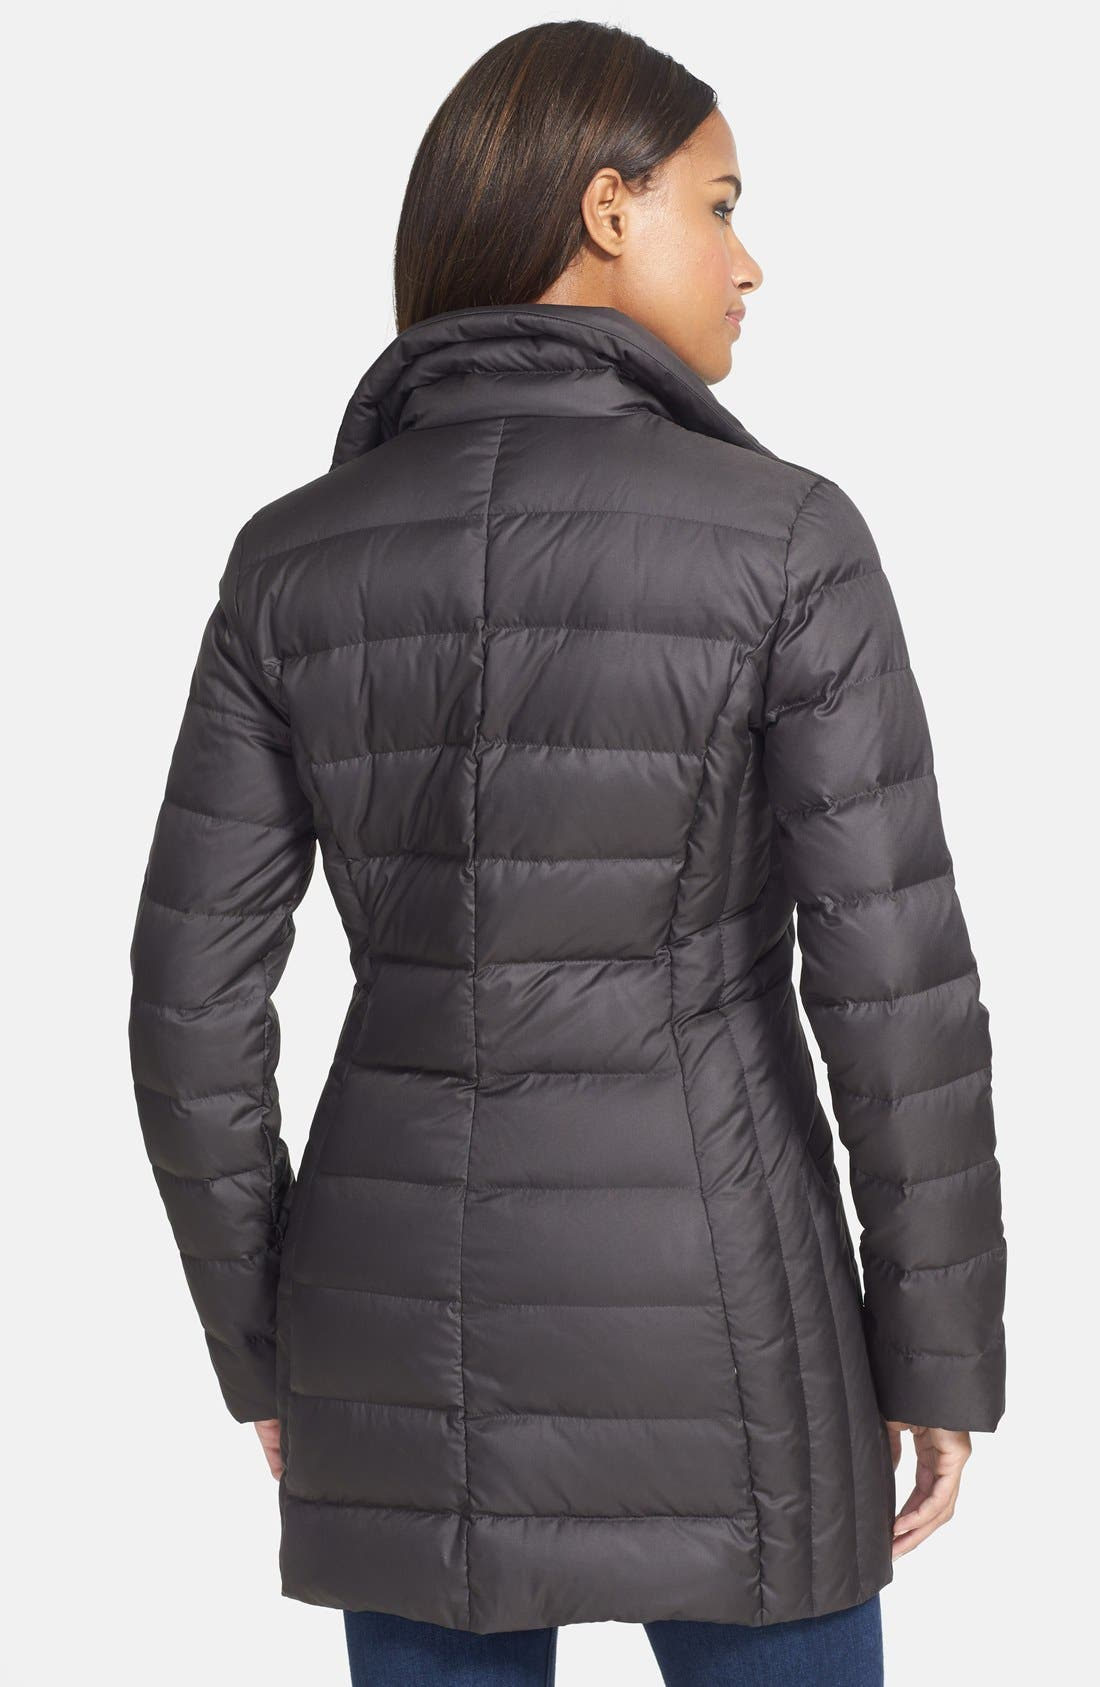 Packable Down Jacket,                             Alternate thumbnail 2, color,                             001